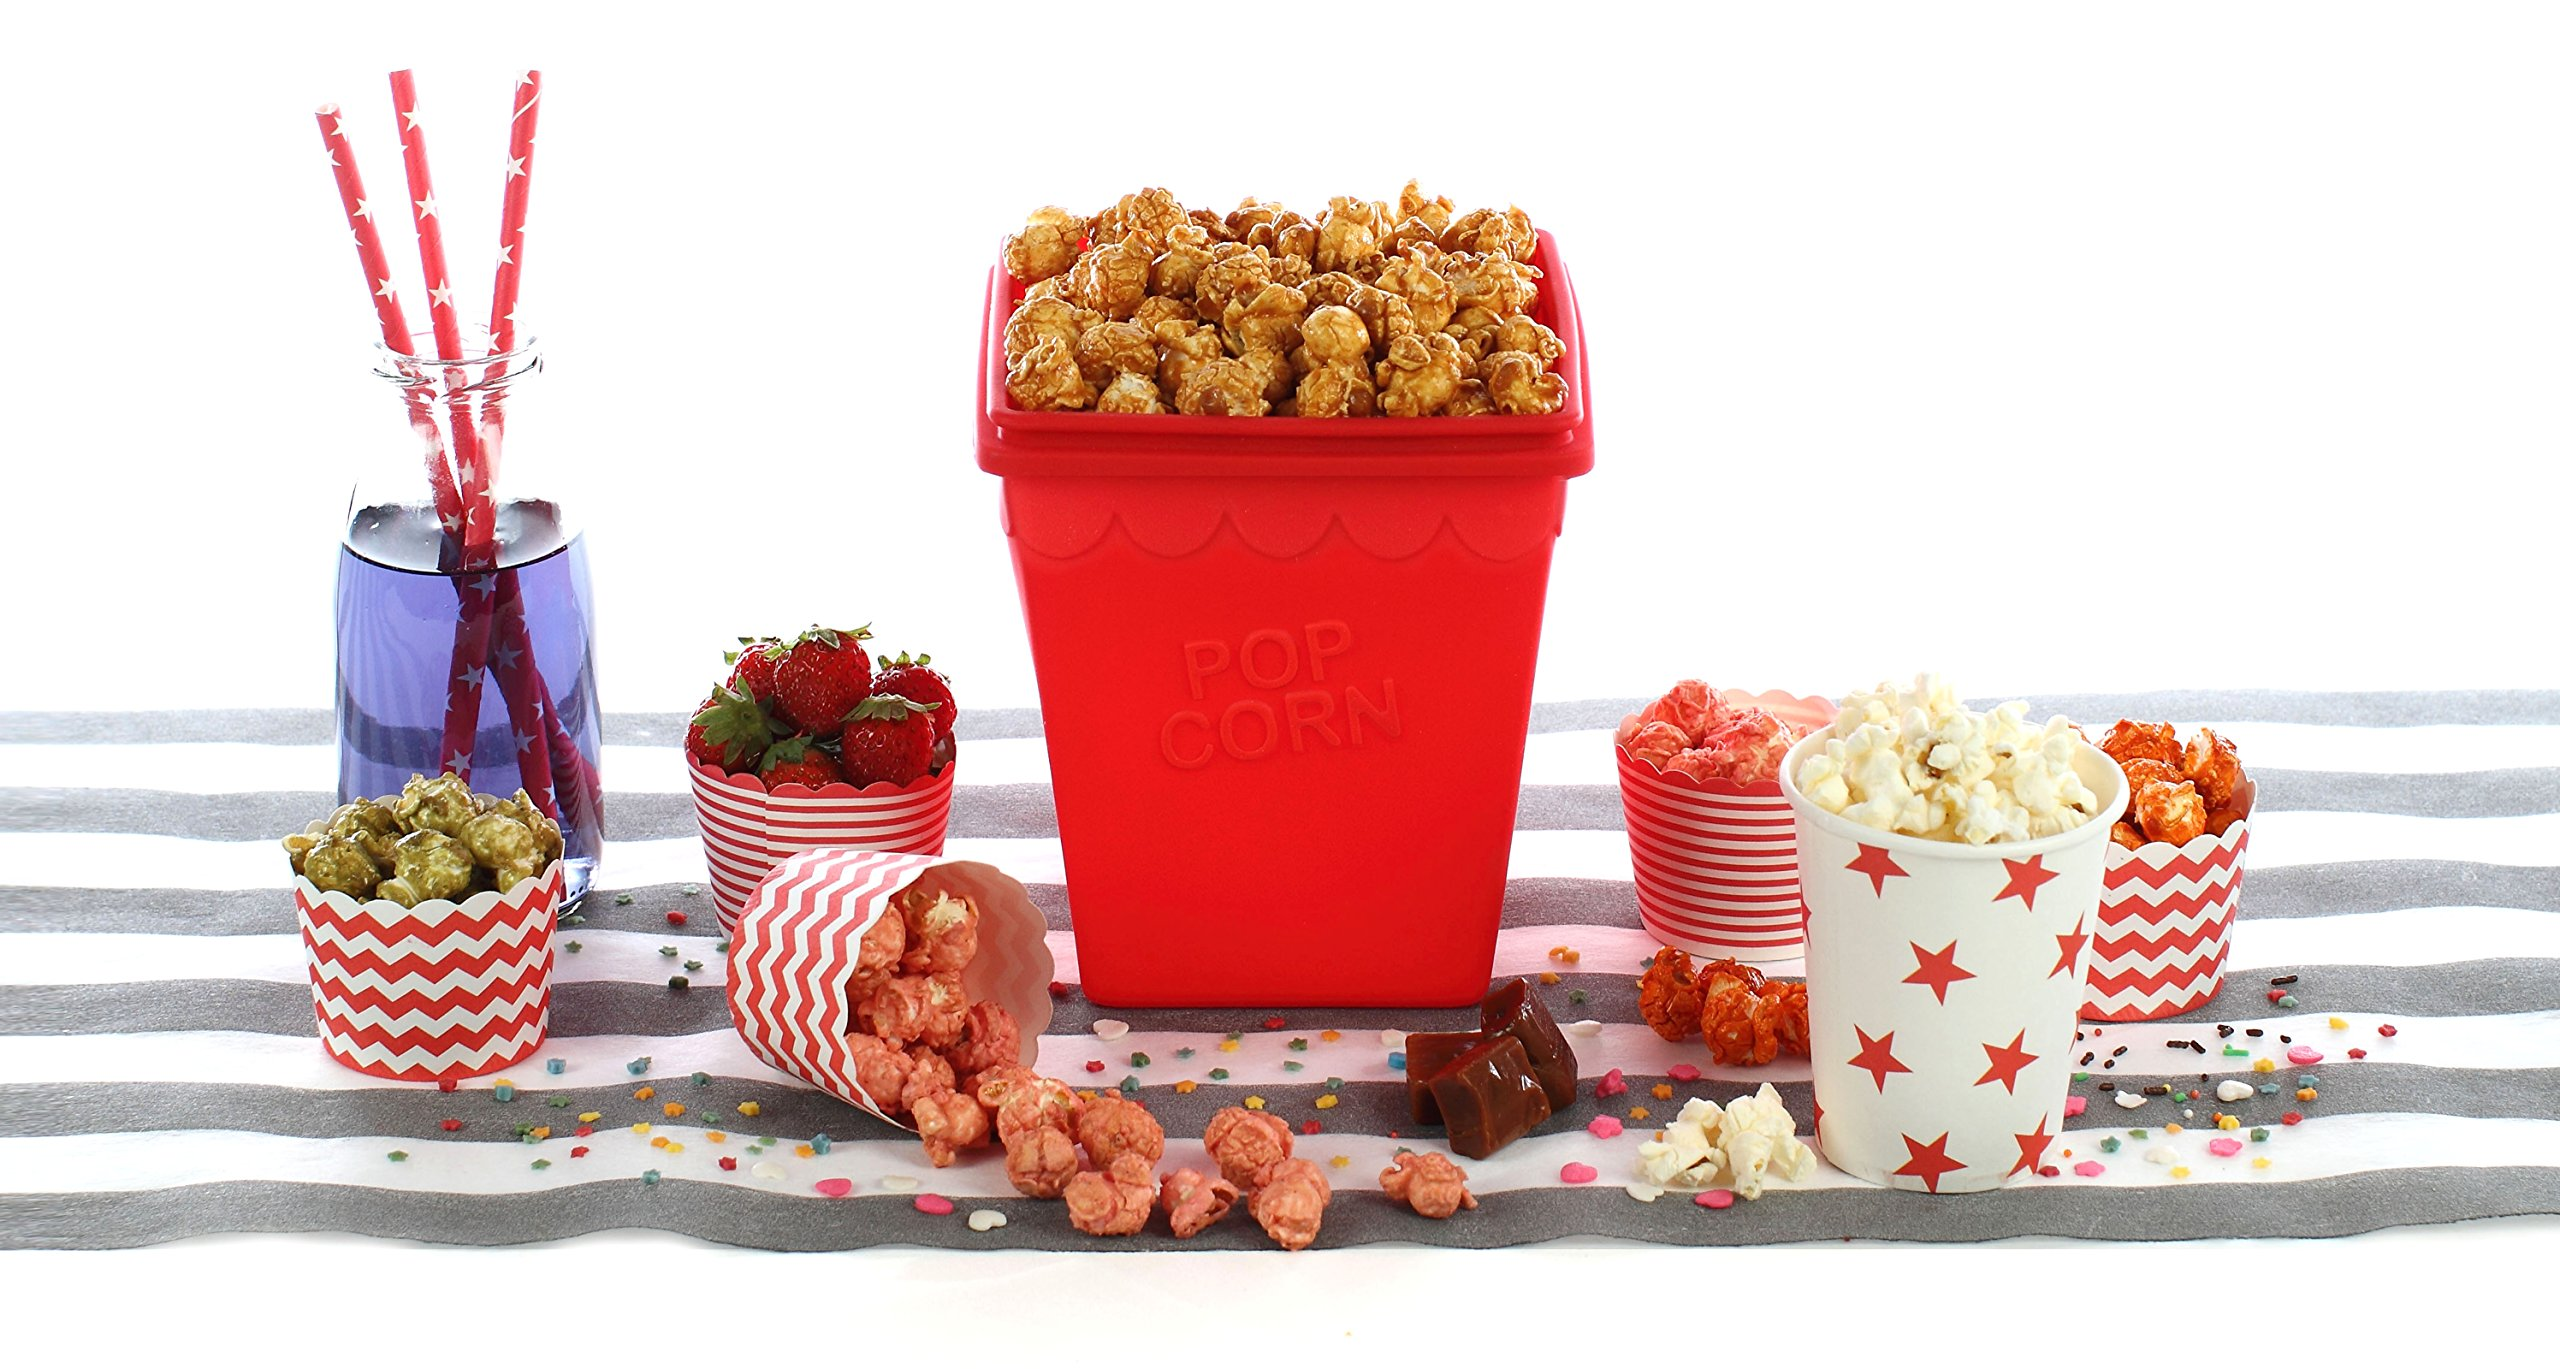 YOKO Design 1270 Popcorn Kit, 25 x 19.5 x 14 cm Red